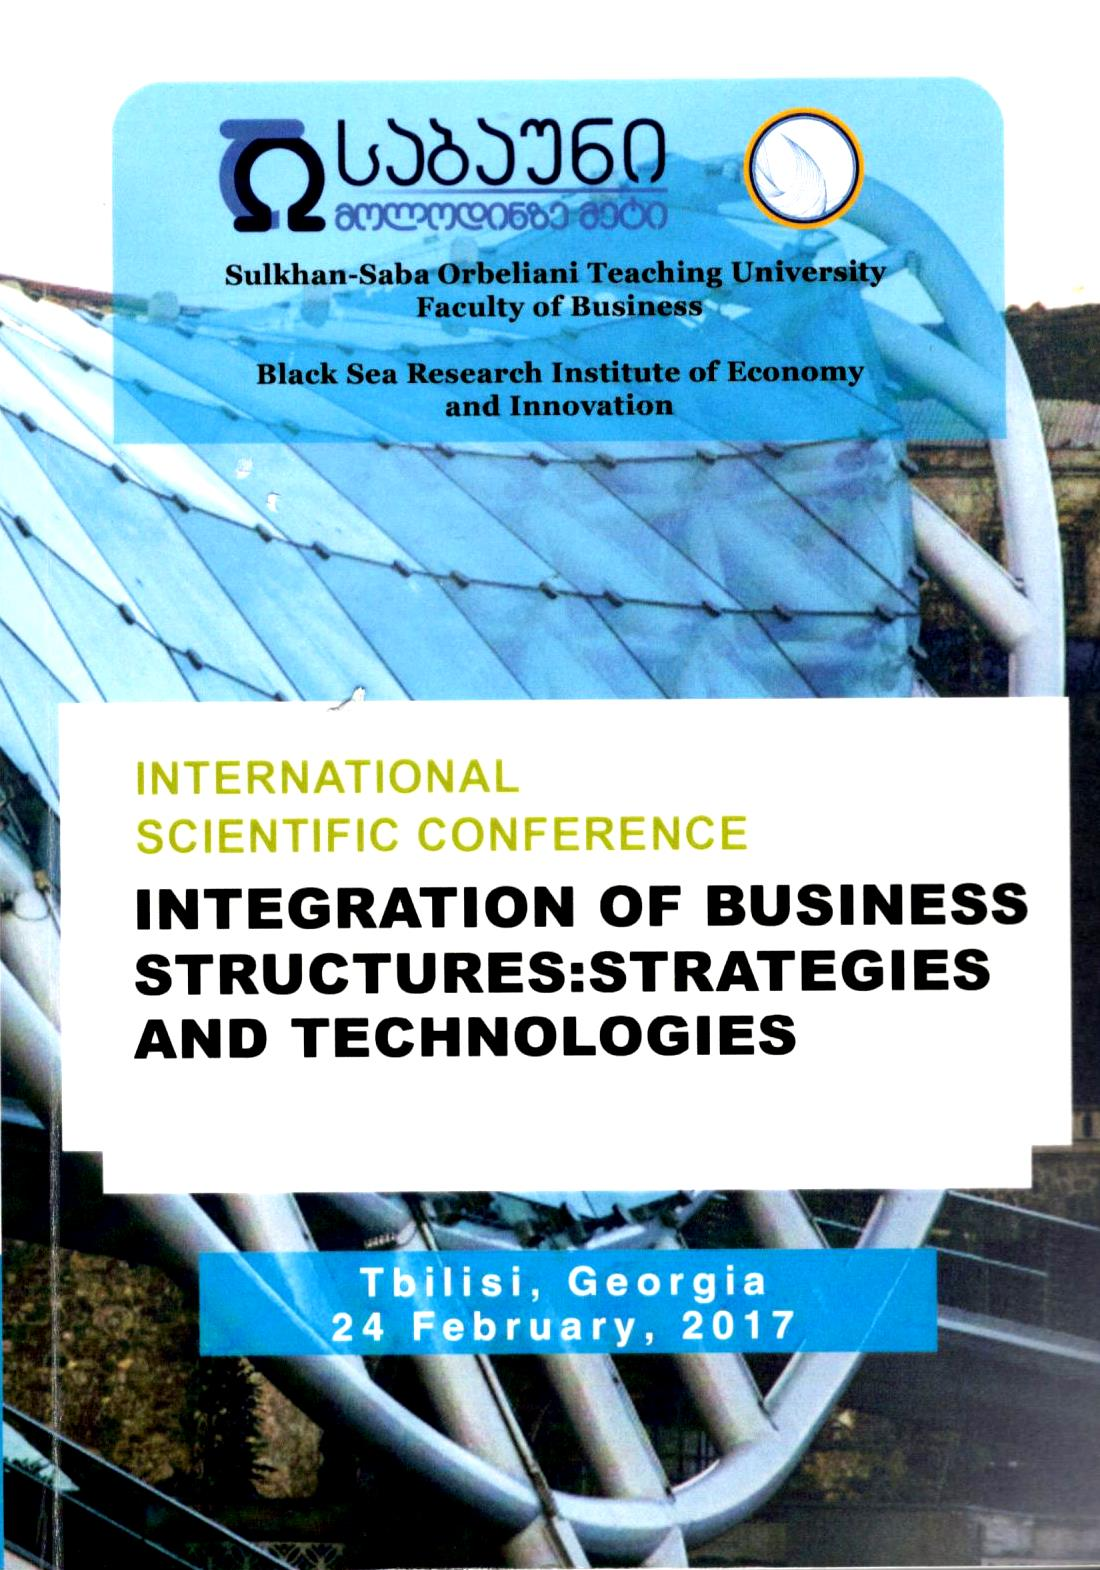 International Scientific Conference. Integration of business structures: strategies and technologies.